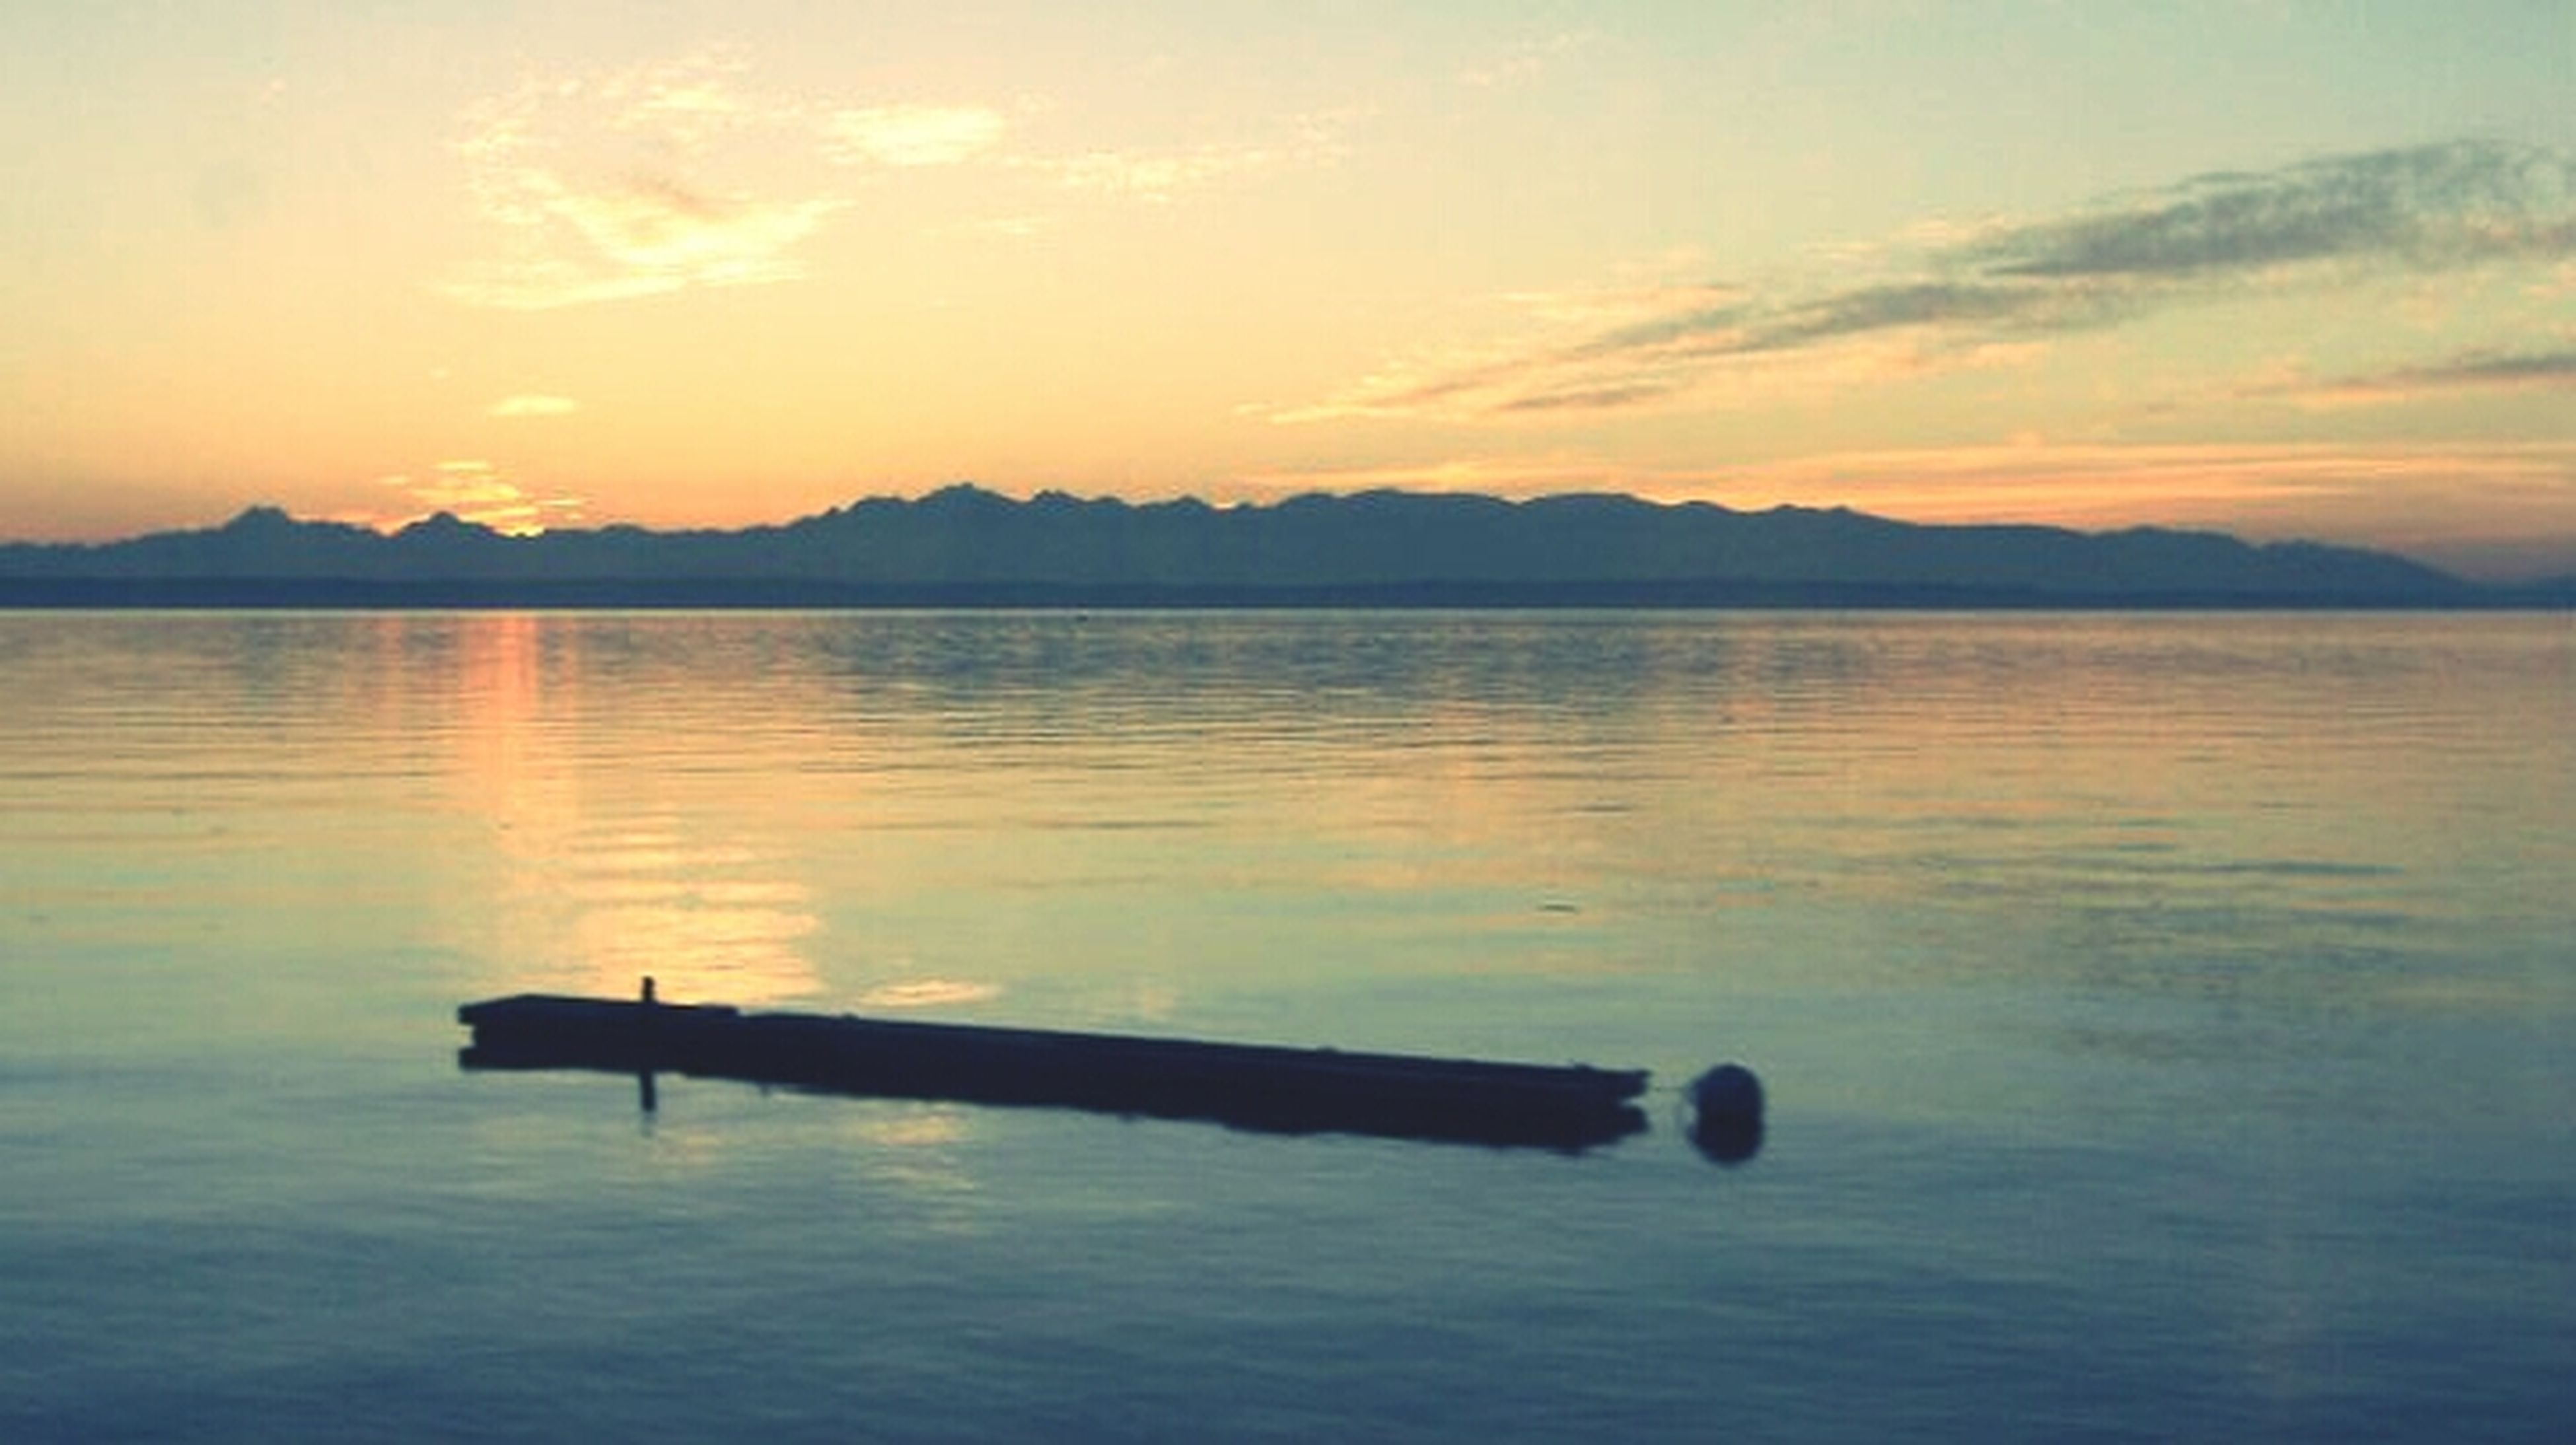 sunset, water, tranquil scene, tranquility, scenics, reflection, lake, beauty in nature, orange color, sky, idyllic, silhouette, nature, waterfront, mountain, sea, calm, rippled, outdoors, non-urban scene